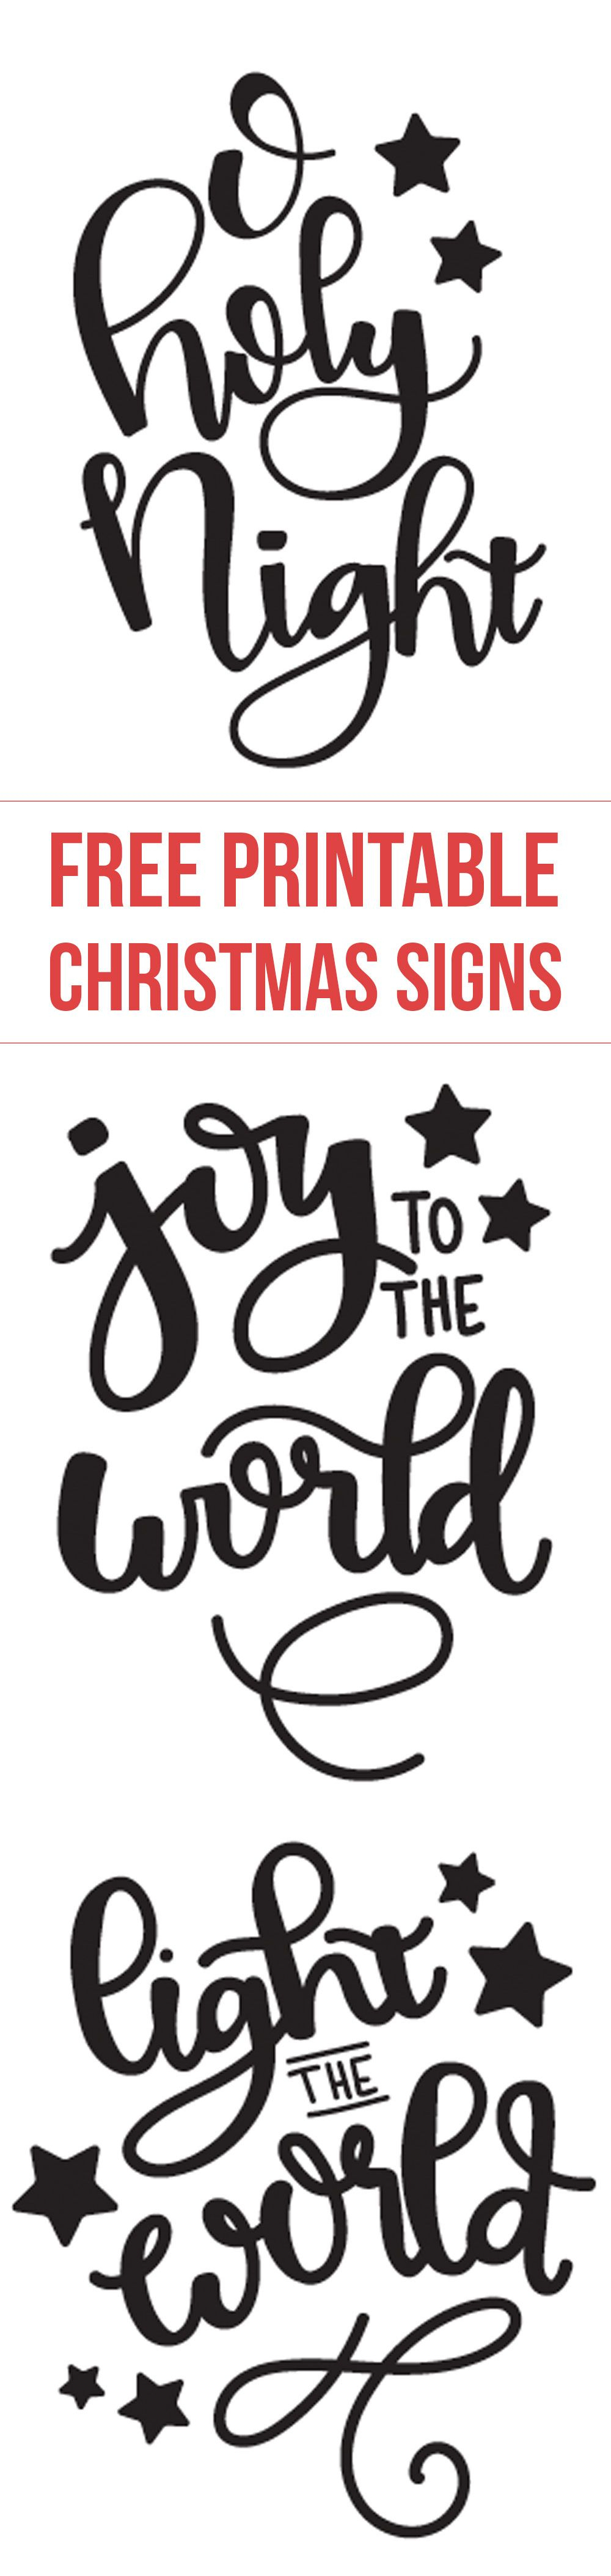 Light The World Designs | Live It. Love It. Lds. | Christmas - Free Printable Christmas Designs